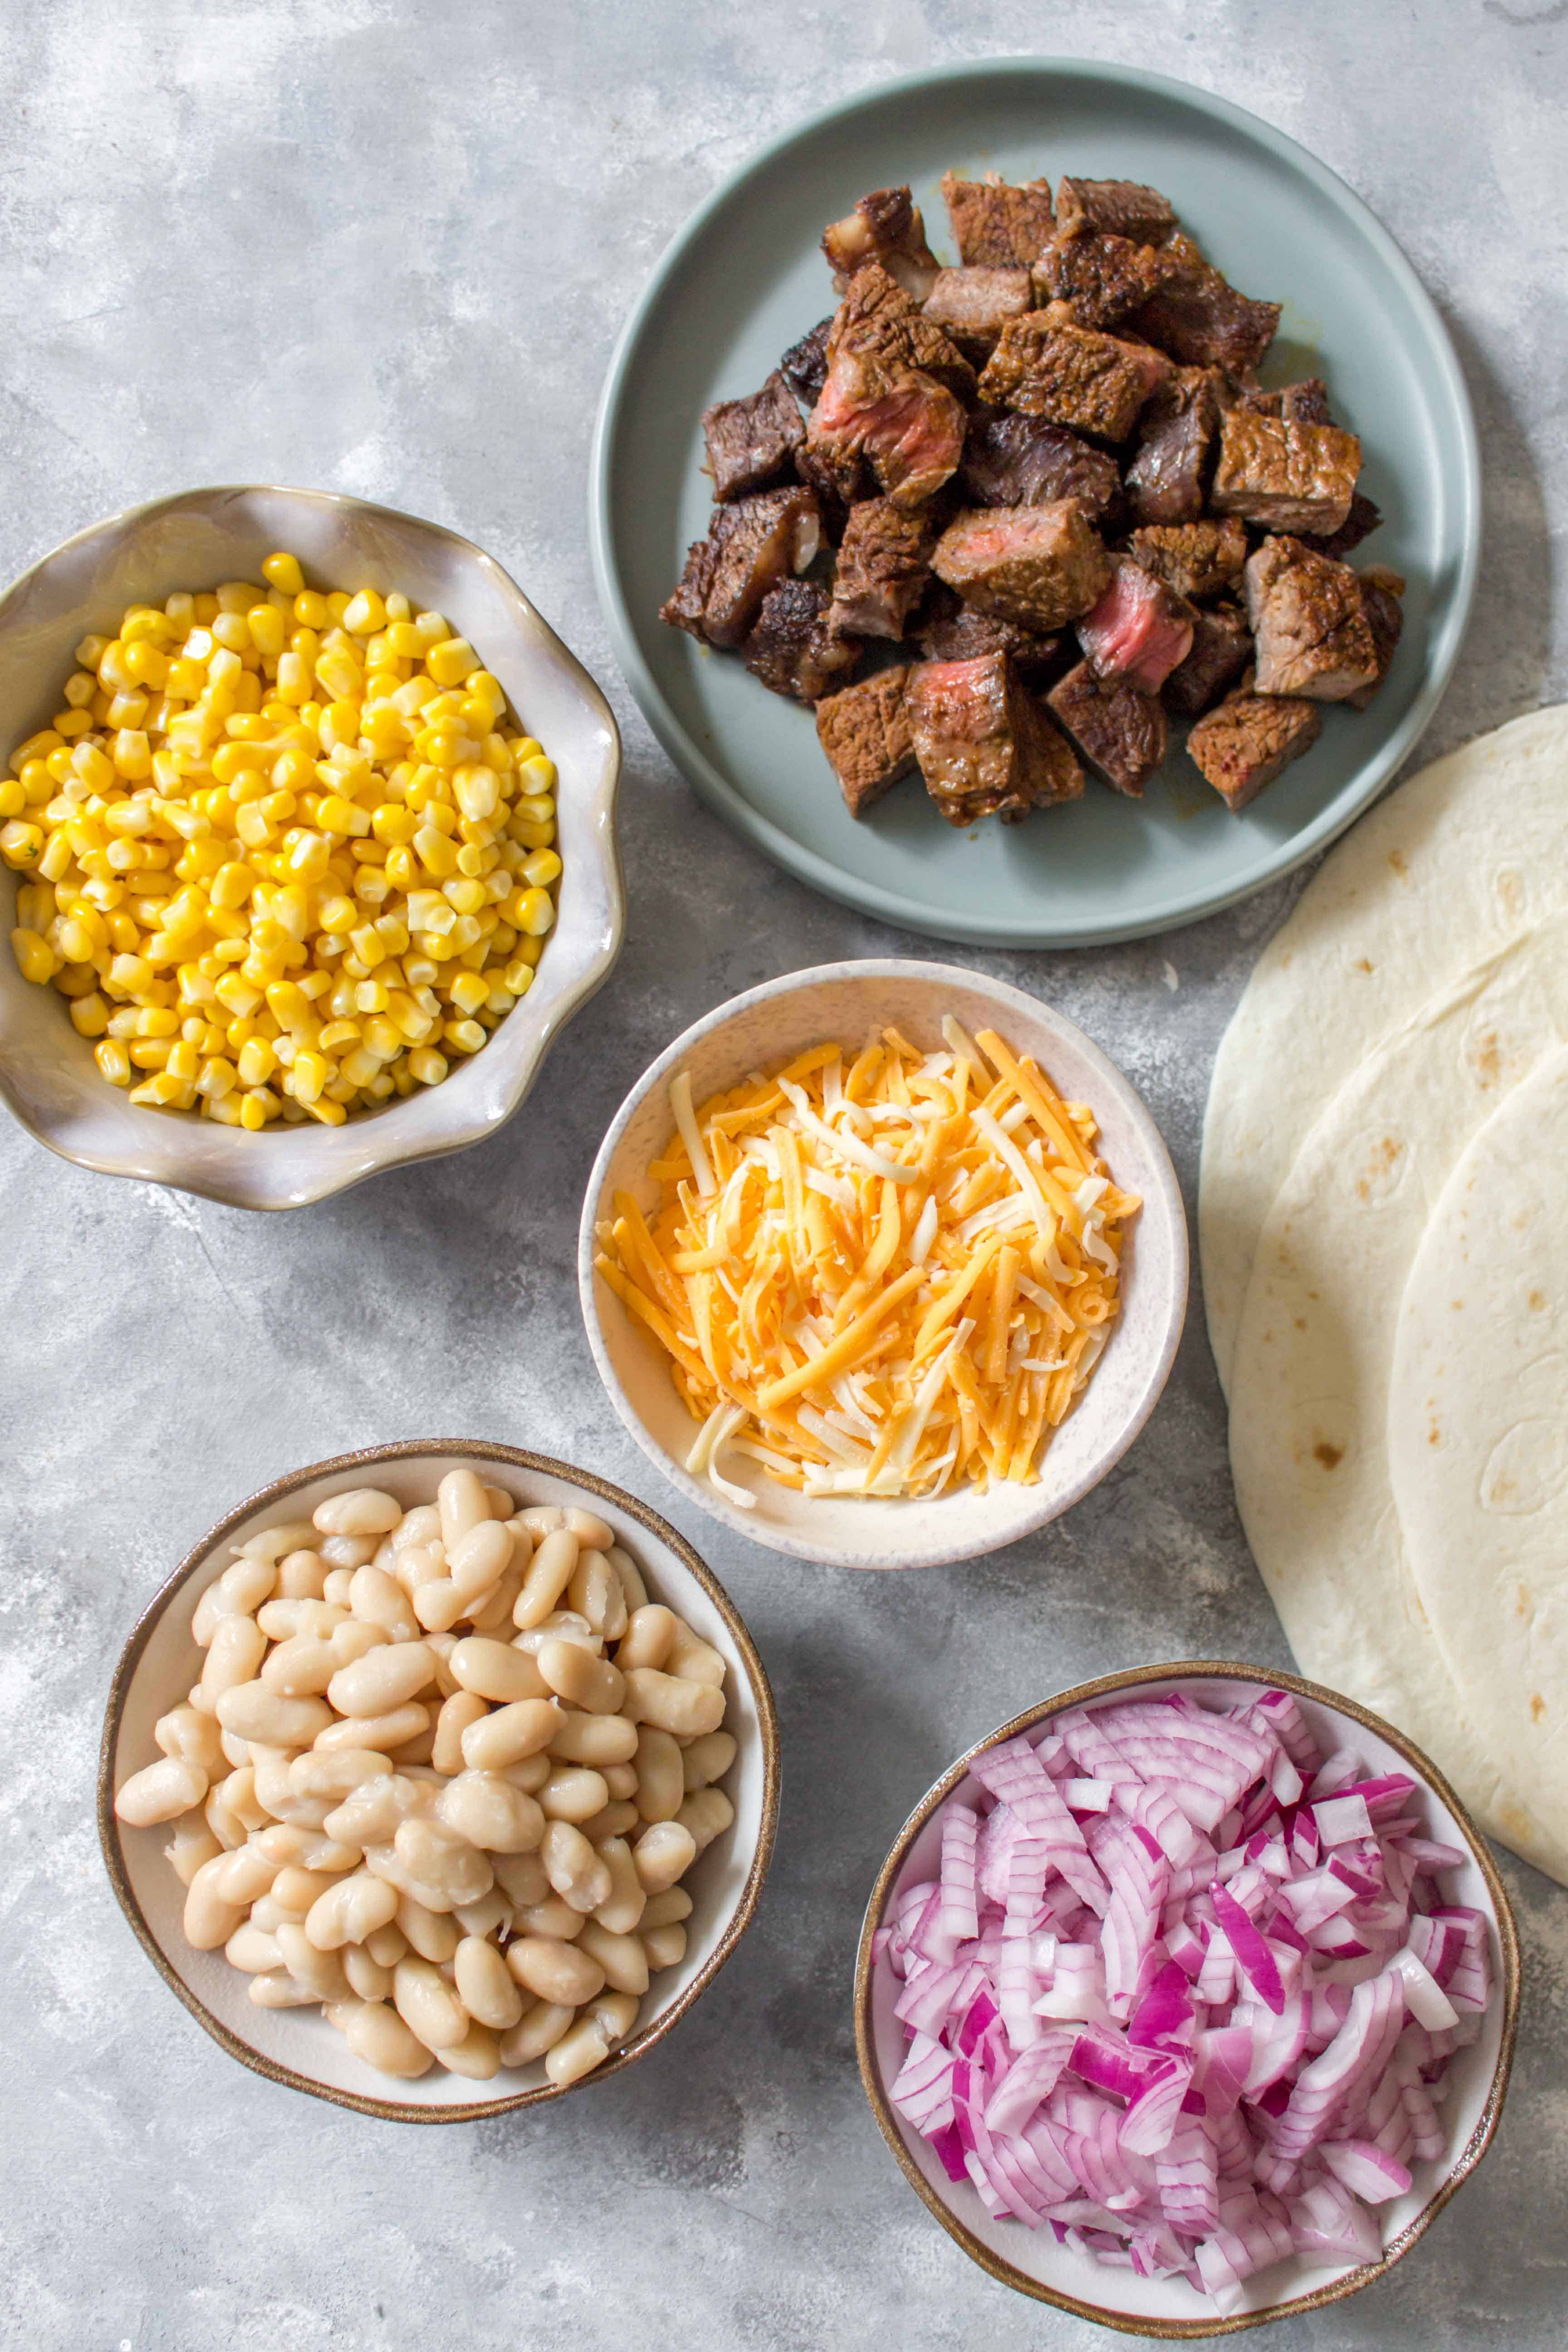 ingredients for steak burritos